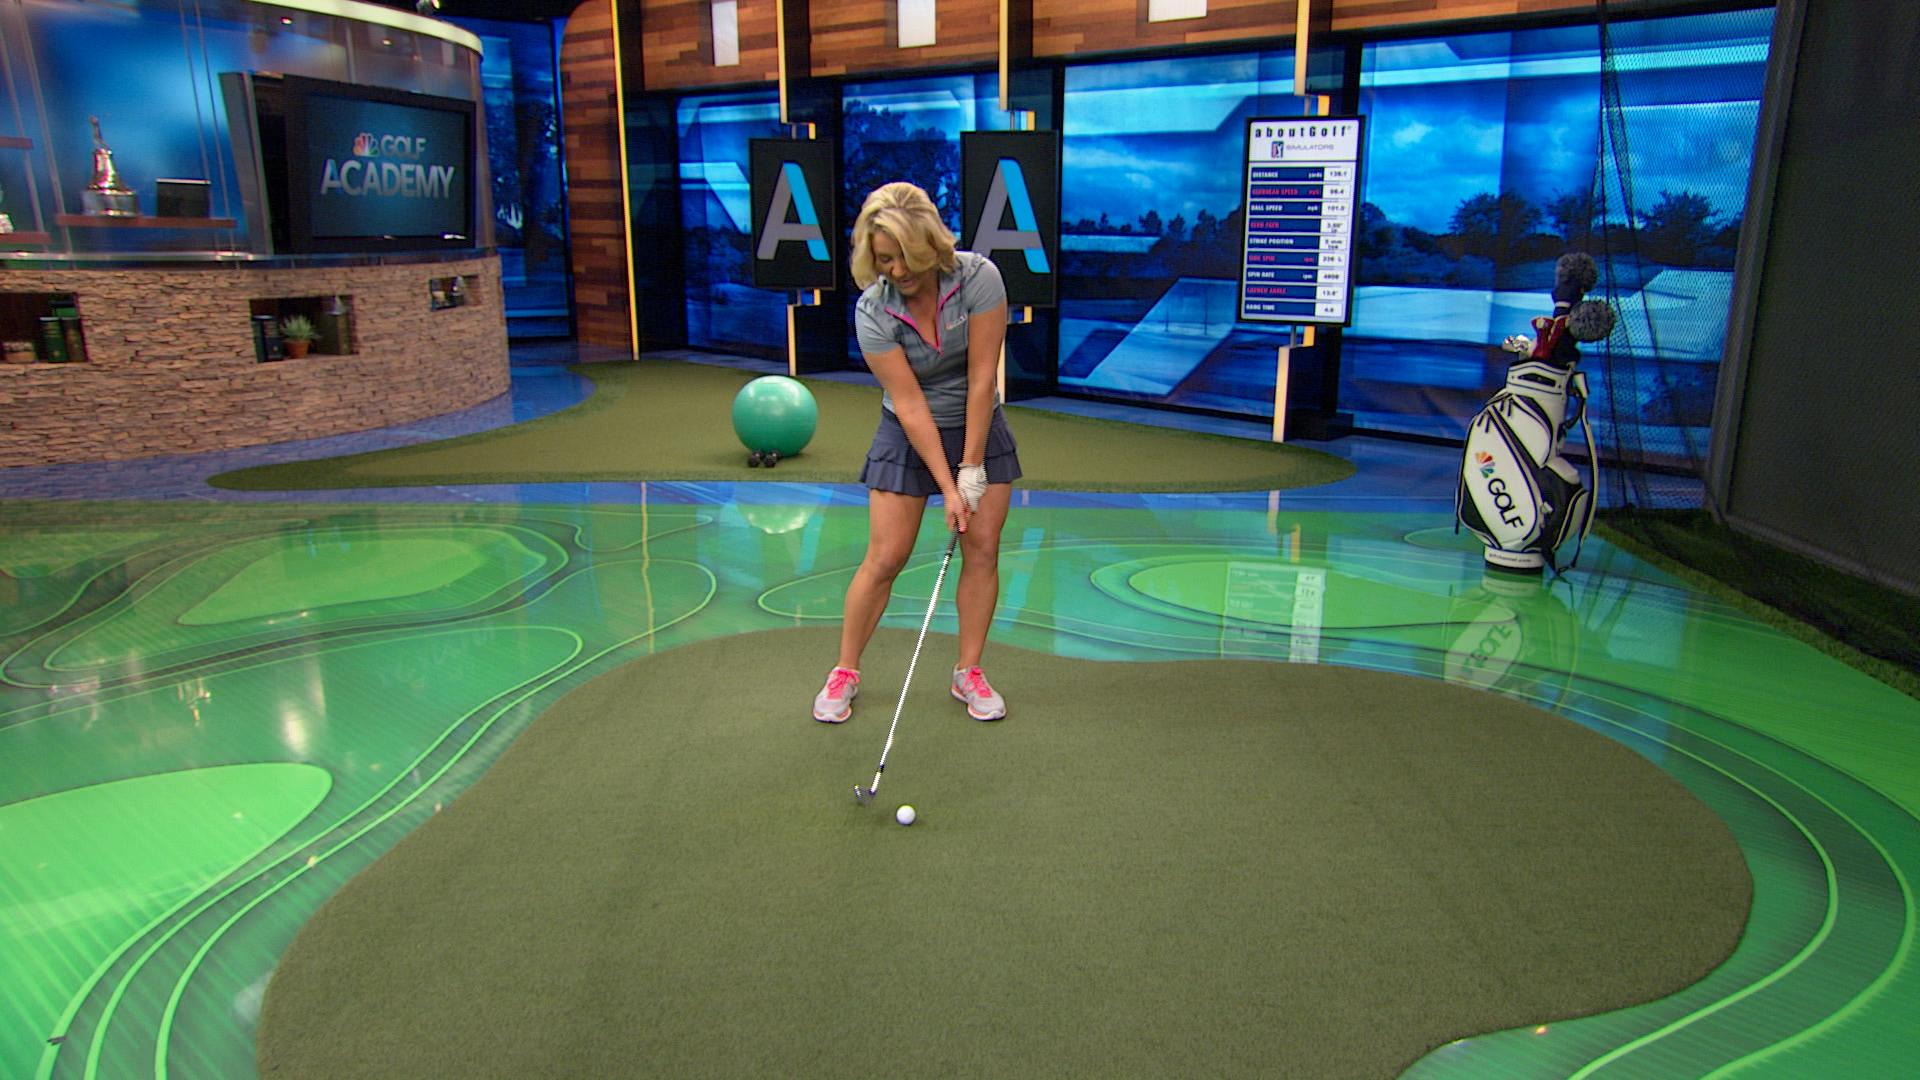 How to control the club face and stop flipping wrists